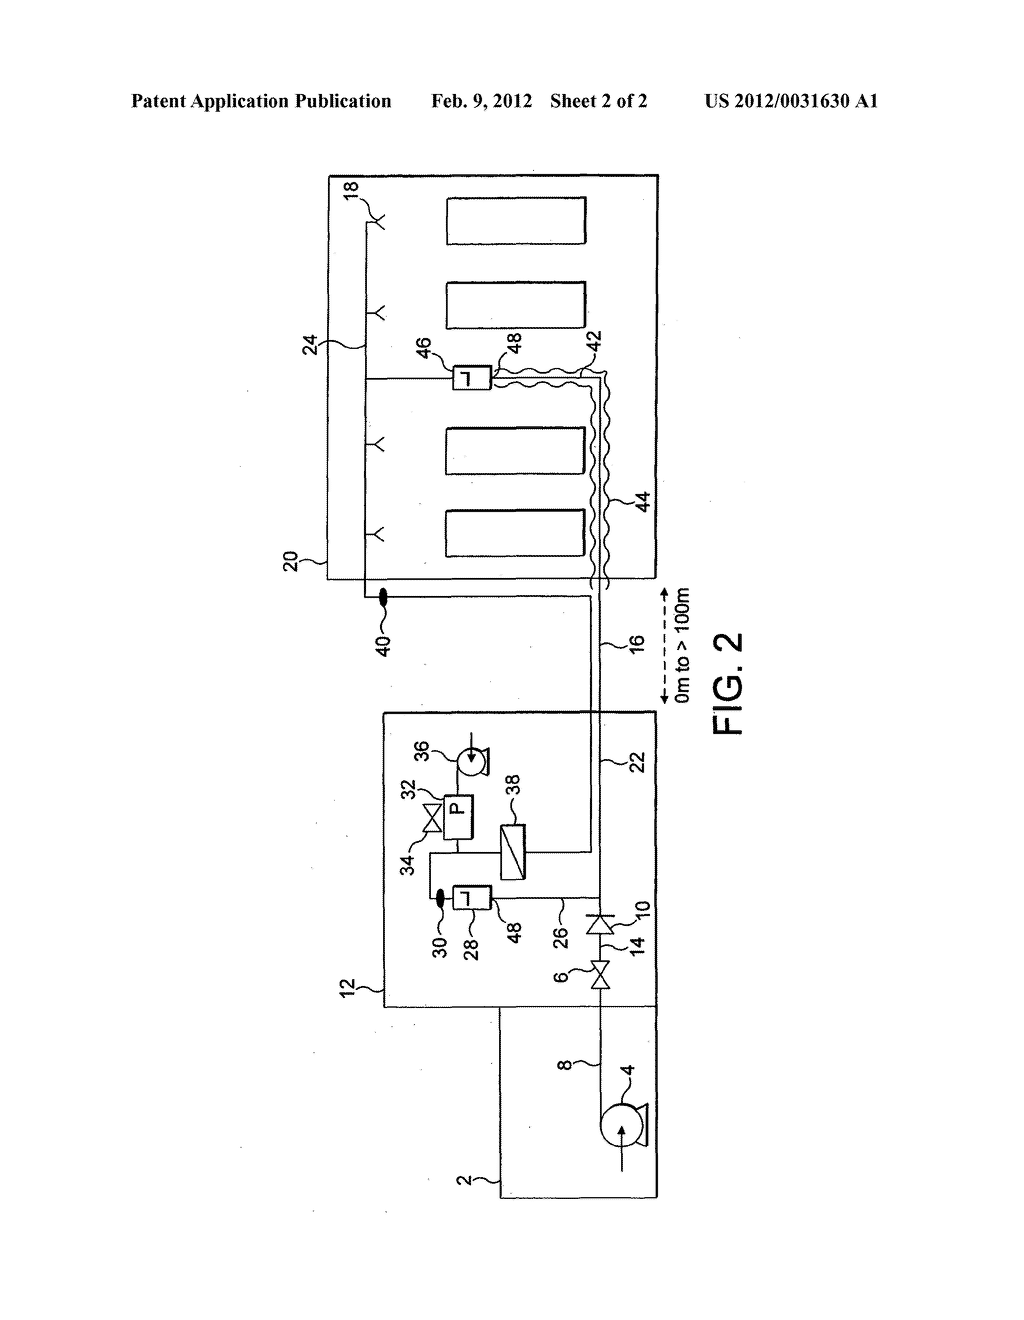 hight resolution of dry pipe sprinkler system diagram schematic and image 03 sprinkler riser system piping sprinkler riser diagram